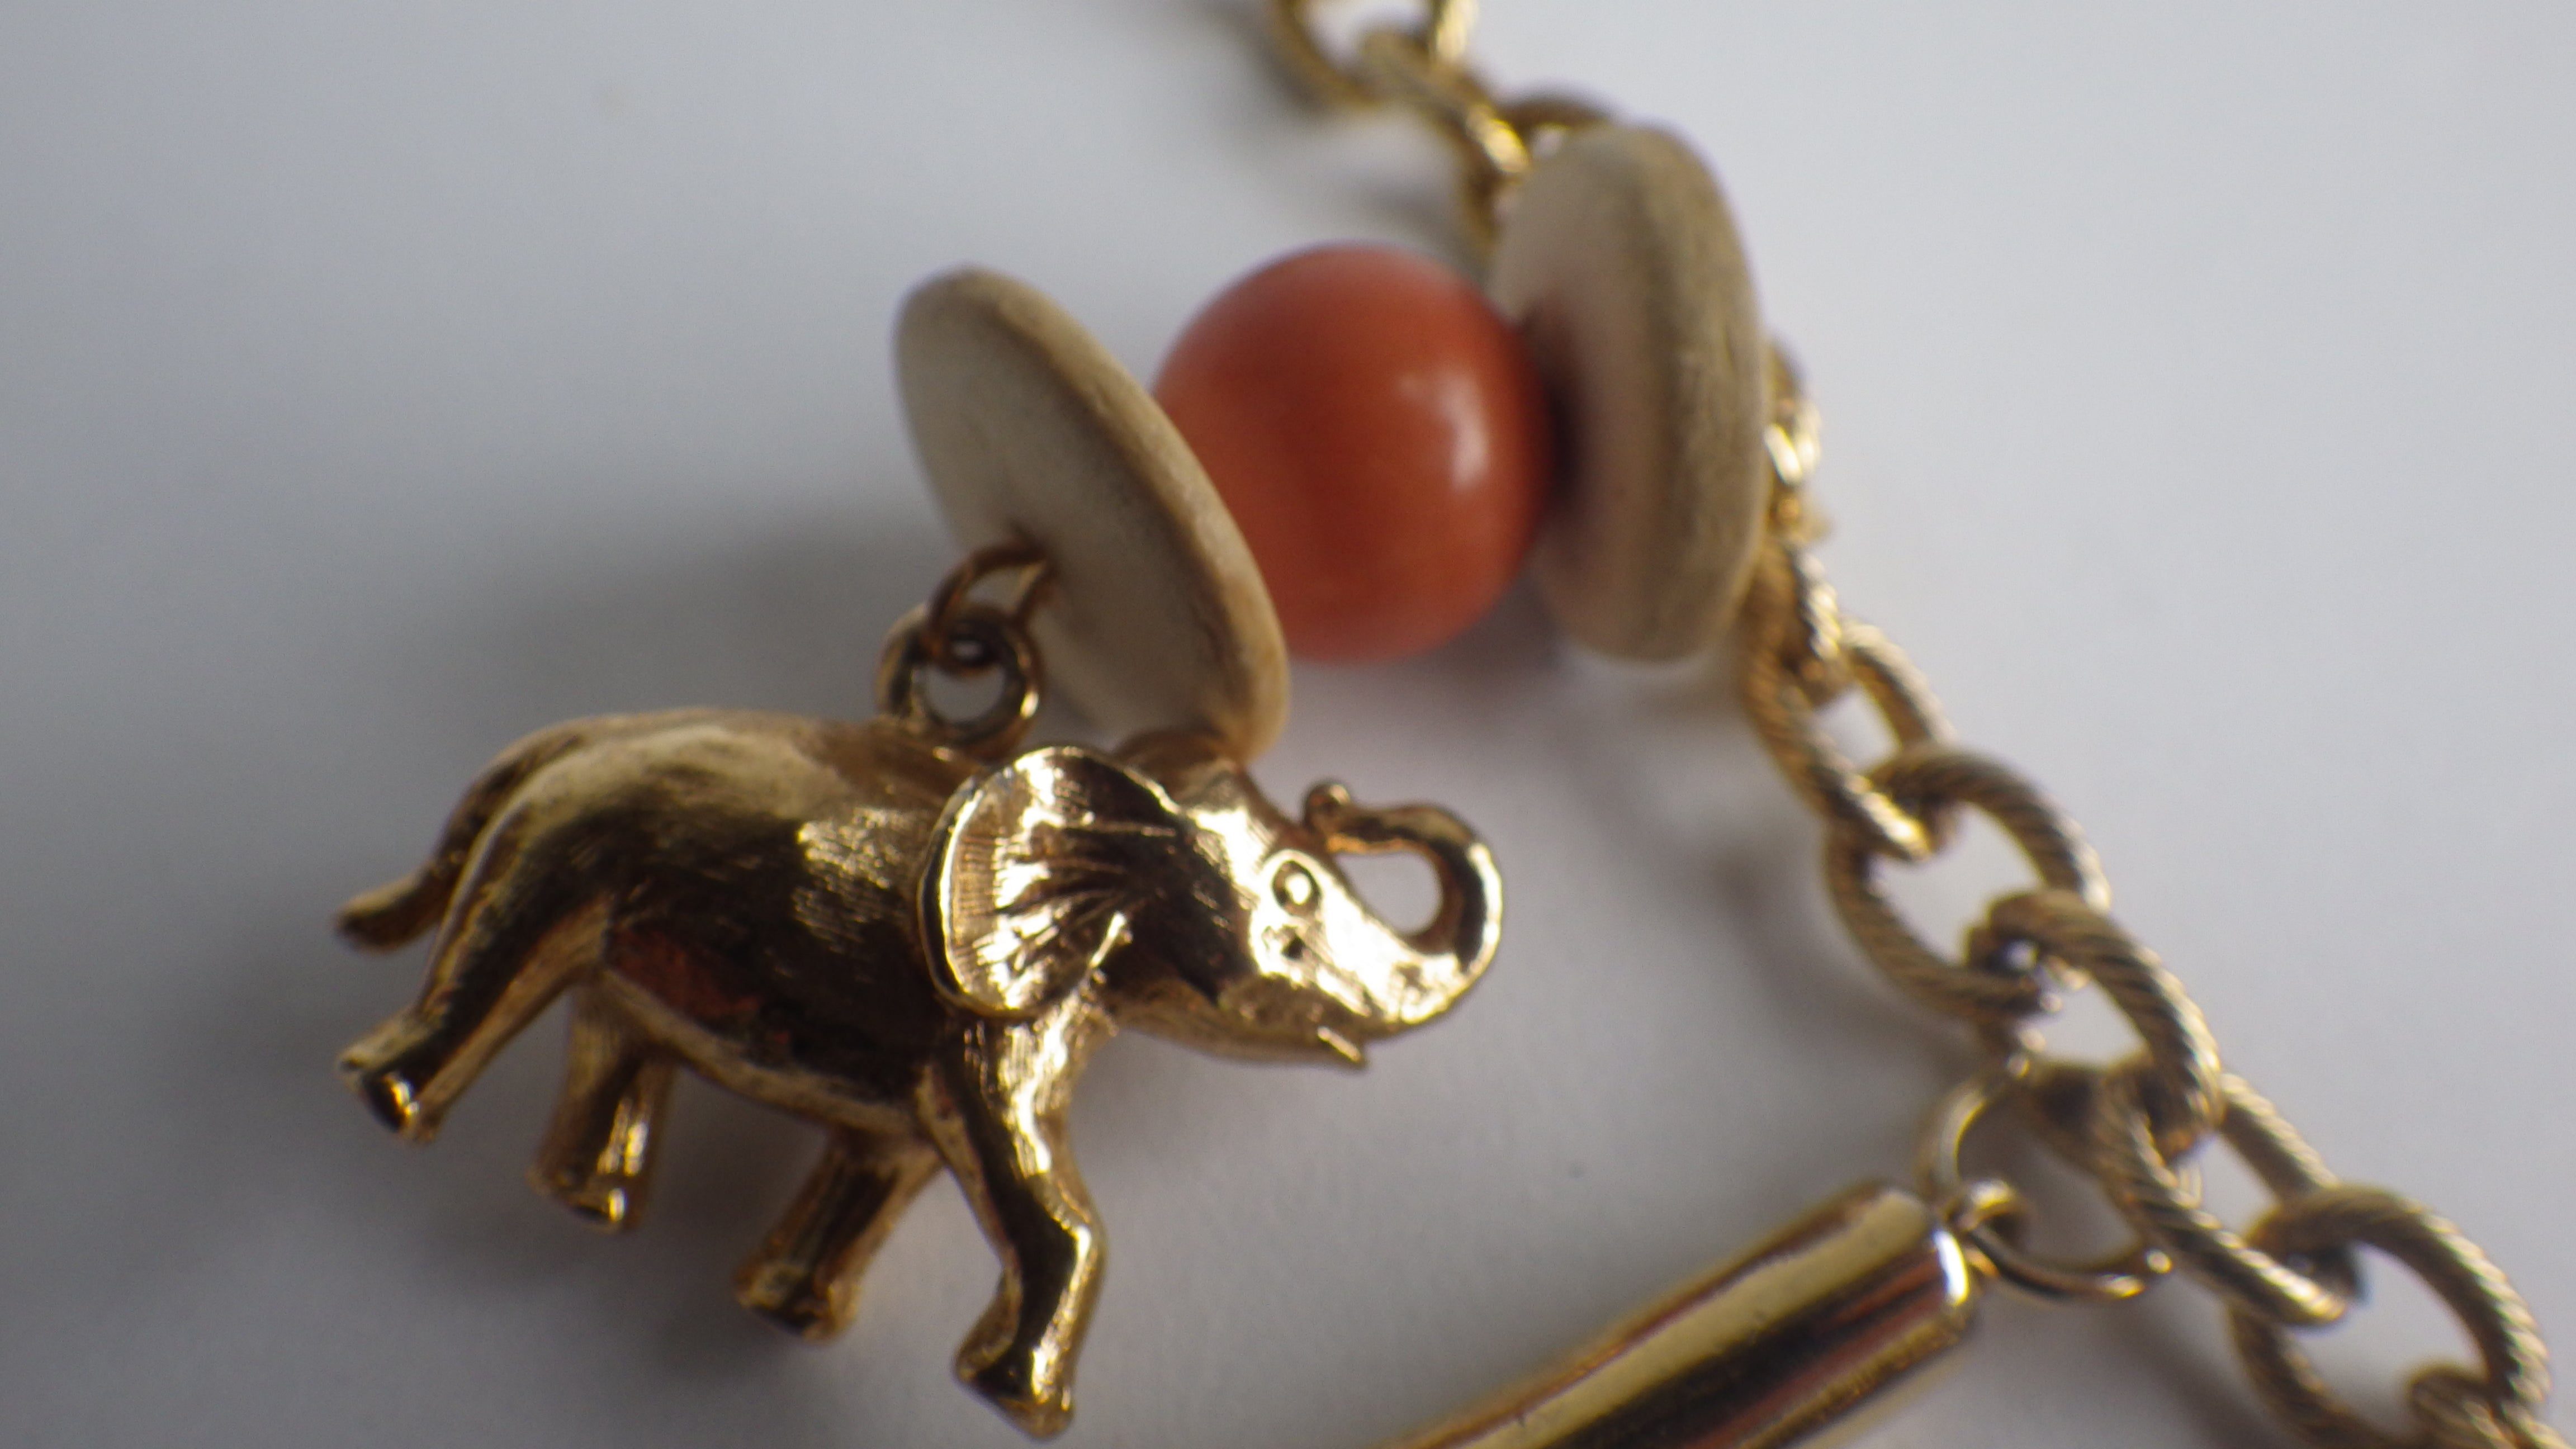 VINTAGE WHIMSICAL GOLD TONE MOON FACE ELEPHANTS CHARM NECKLACE CHOKER